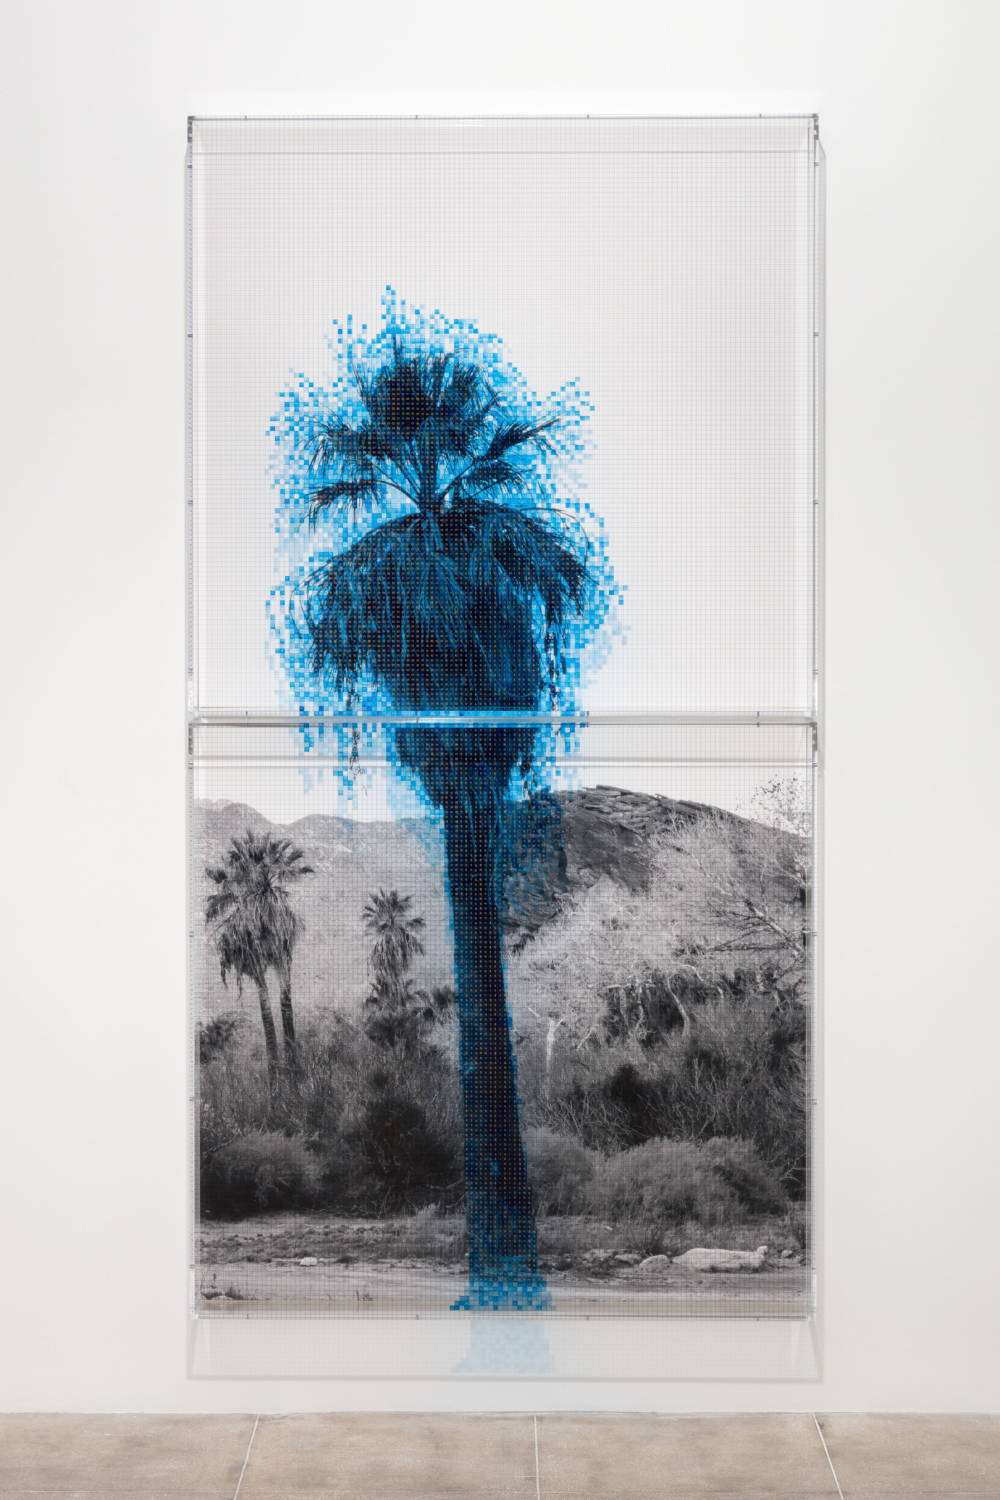 Numbers and Trees: Palm Canyon, Palm Trees Series 2, Tree #1, Cahuilla